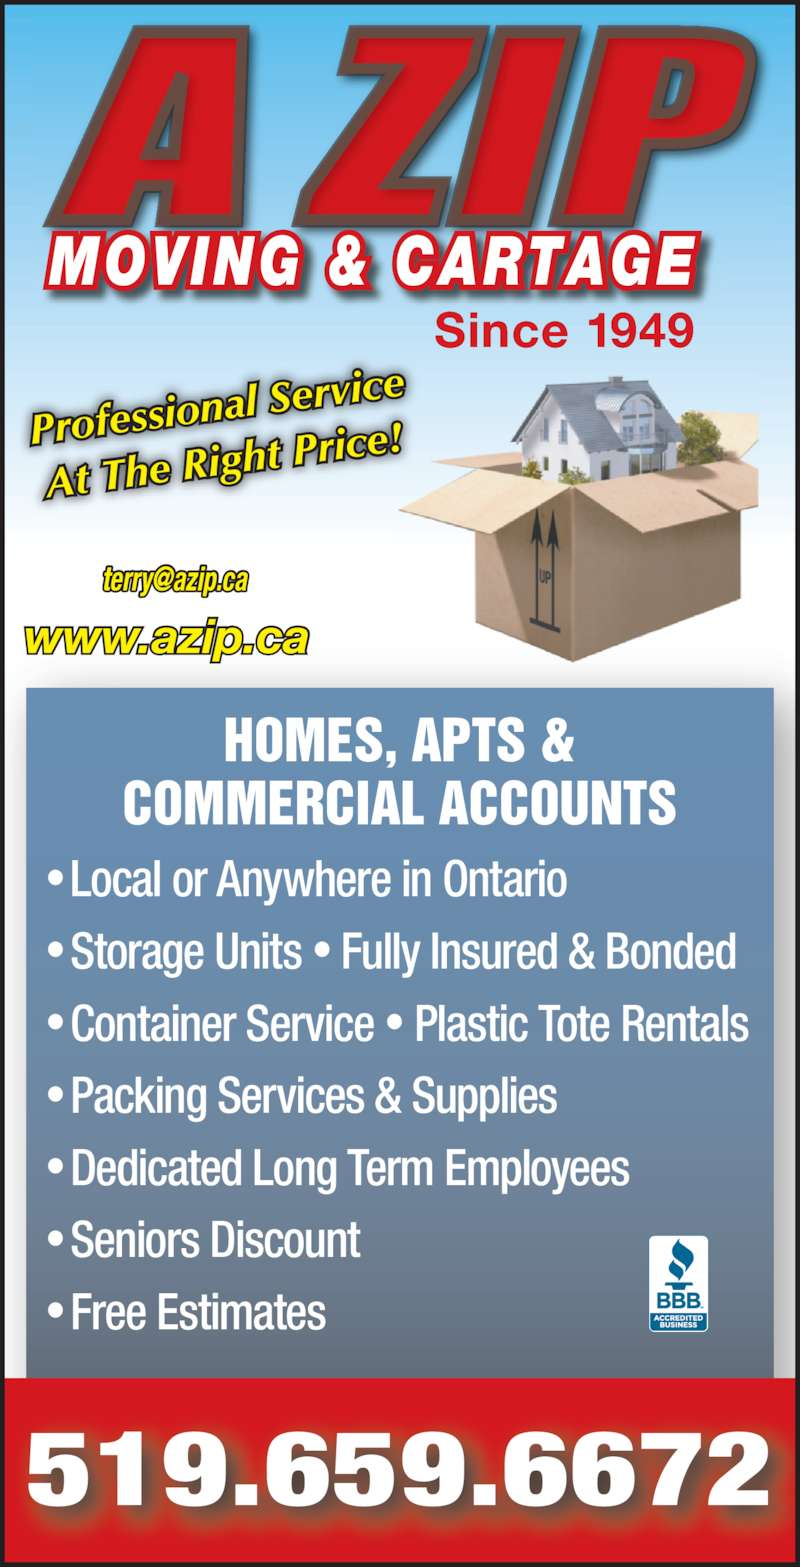 A Zip Moving & Cartage (519-659-6672) - Display Ad - ? Local or Anywhere in Ontario ? Storage Units ? Fully Insured & Bonded ? Container Service ? Plastic Tote Rentals ? Packing Services & Supplies ? Dedicated Long Term Employees ? Seniors Discount ? Free Estimates HOMES, APTS & COMMERCIAL ACCOUNTS 519.659.6672 www.azip.ca MOVING & CARTAGE Since 1949 Profession al Service At The Rig ht Price!